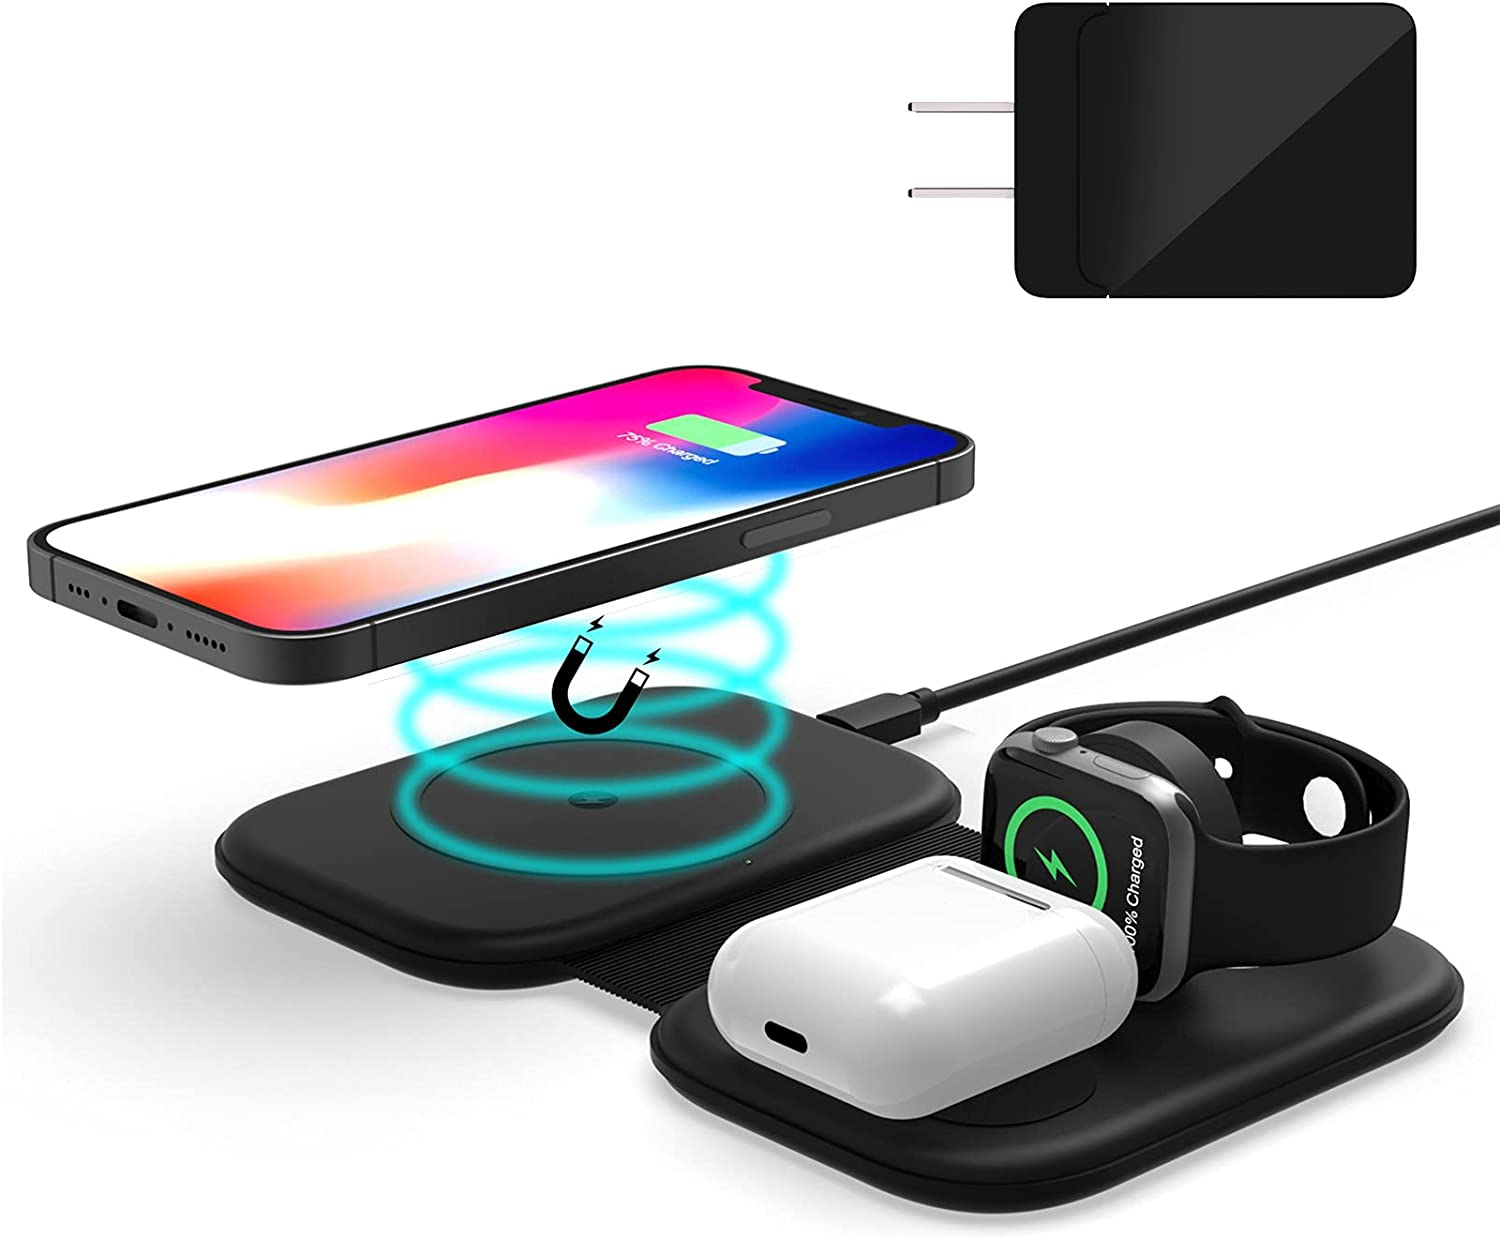 Wireless Charging Pad, FACEVER 3-in-1 Magnetic Wireless Charger for iPhone 12 11 Models/XS/X/XR/SE 2/Apple Watch Series/Airpods Pro, Fold Charging Station Dock Compatible for Apple Magsafe Accessories